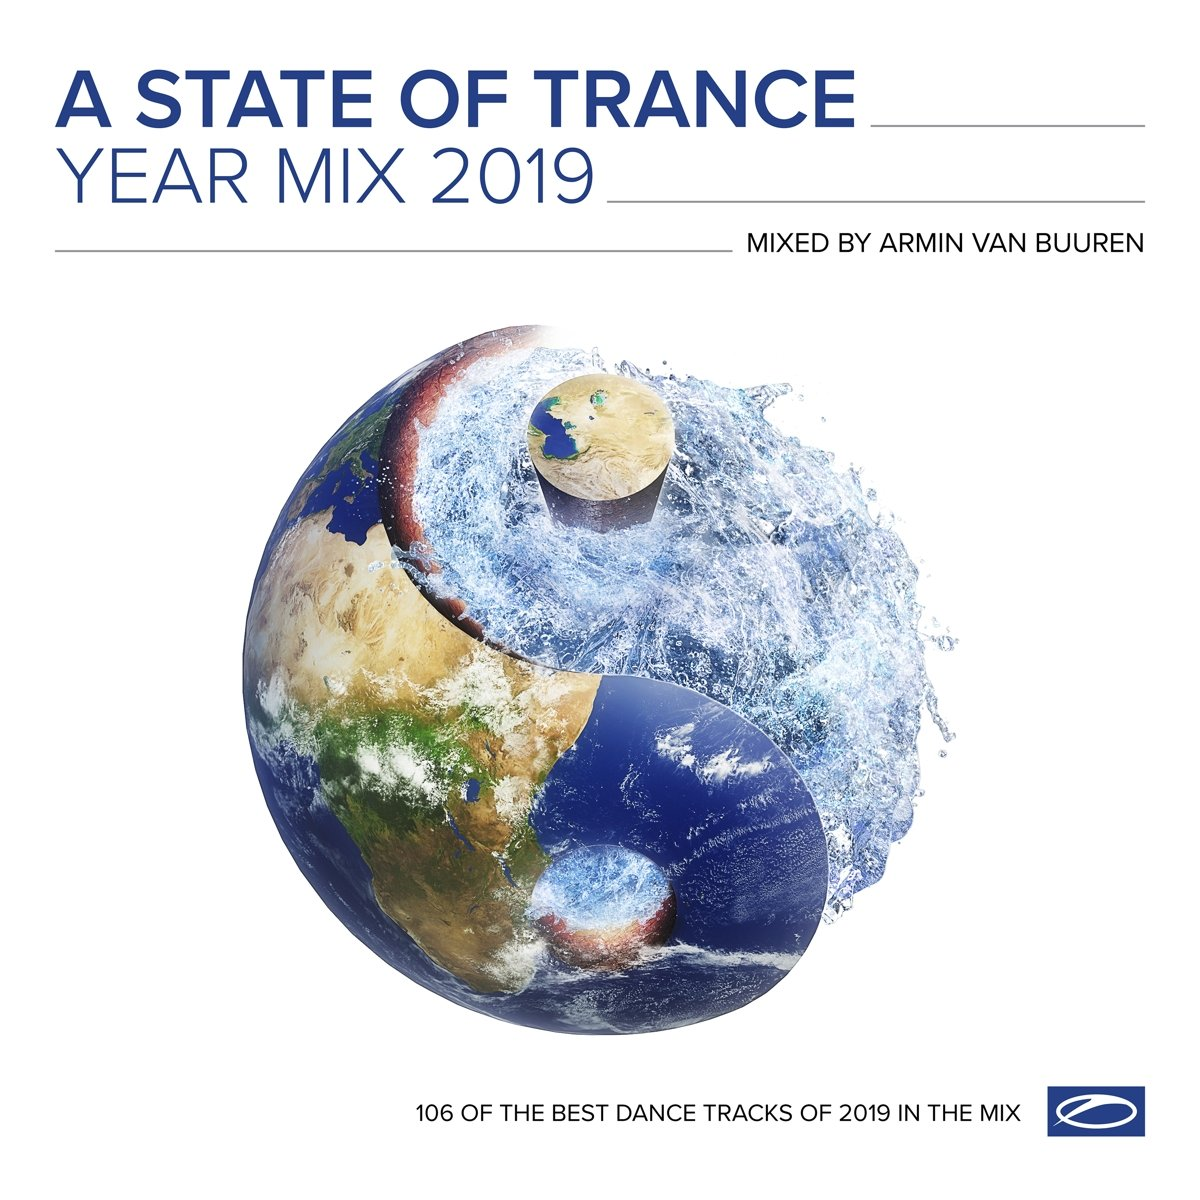 A State Of Trance Year Mix 2019 - Armin Van Buuren